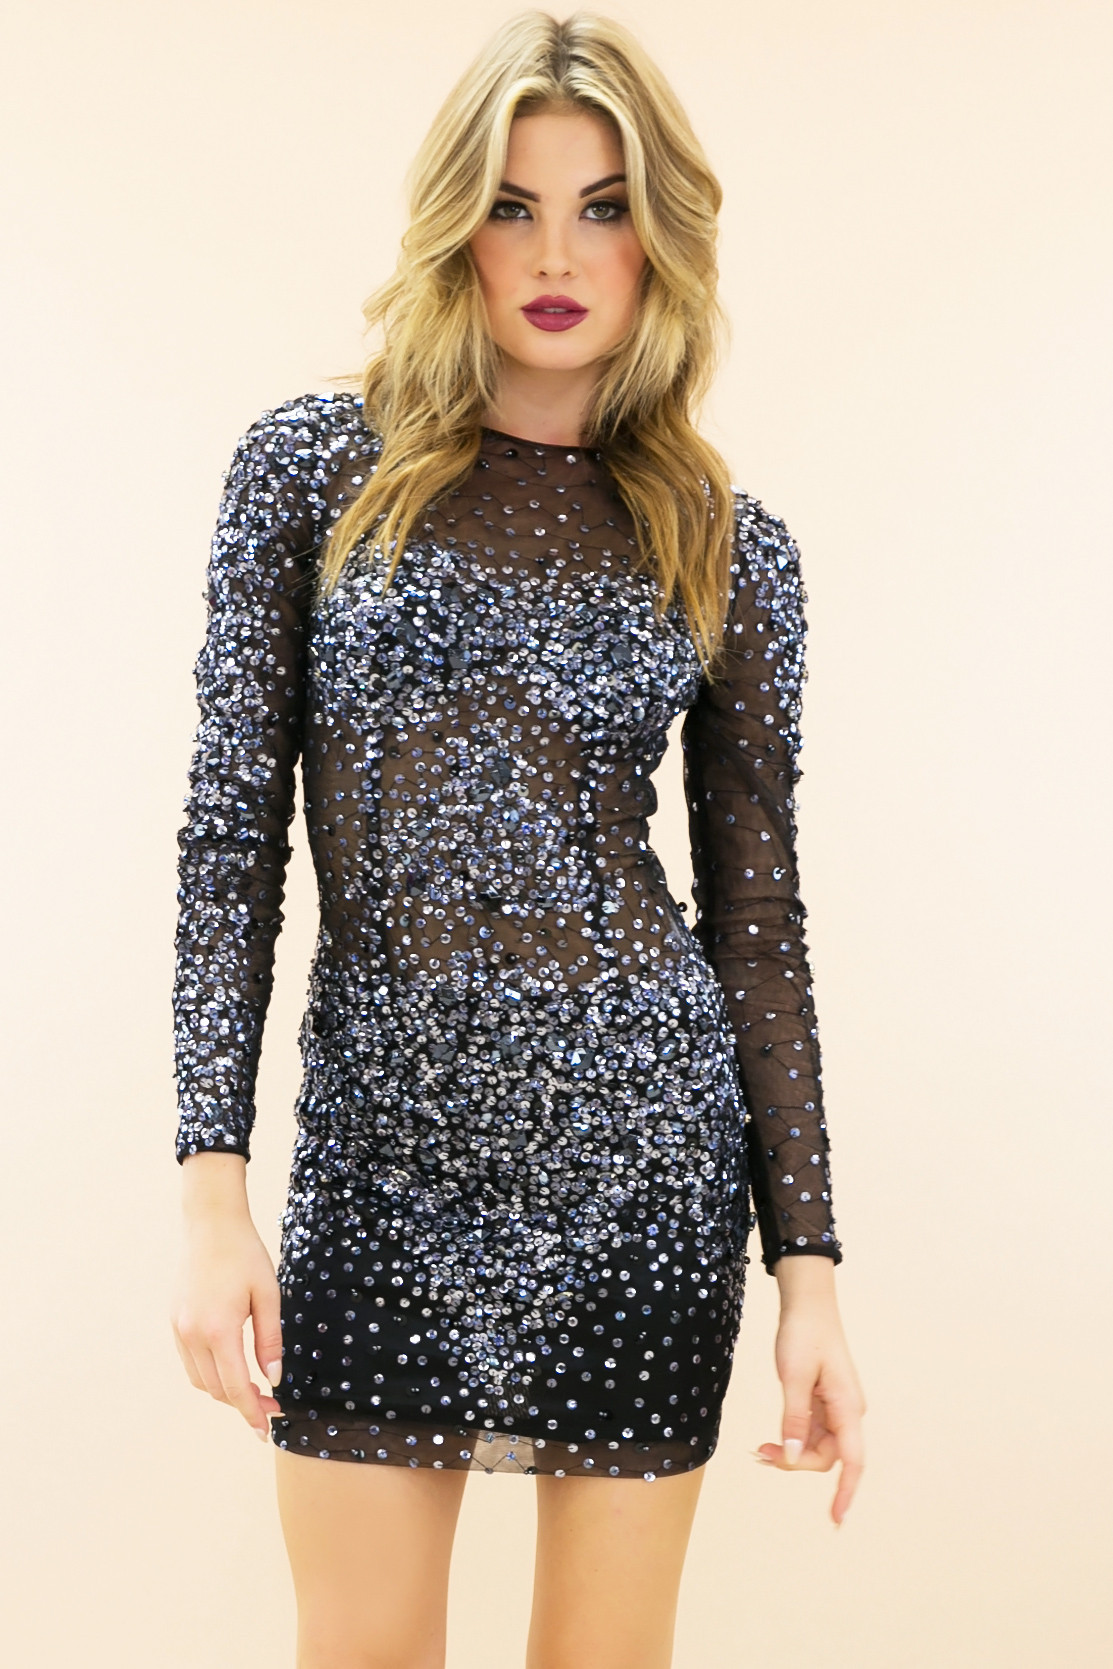 & Sequin Evening Body-con Dress - Silver | Haute & Rebellious